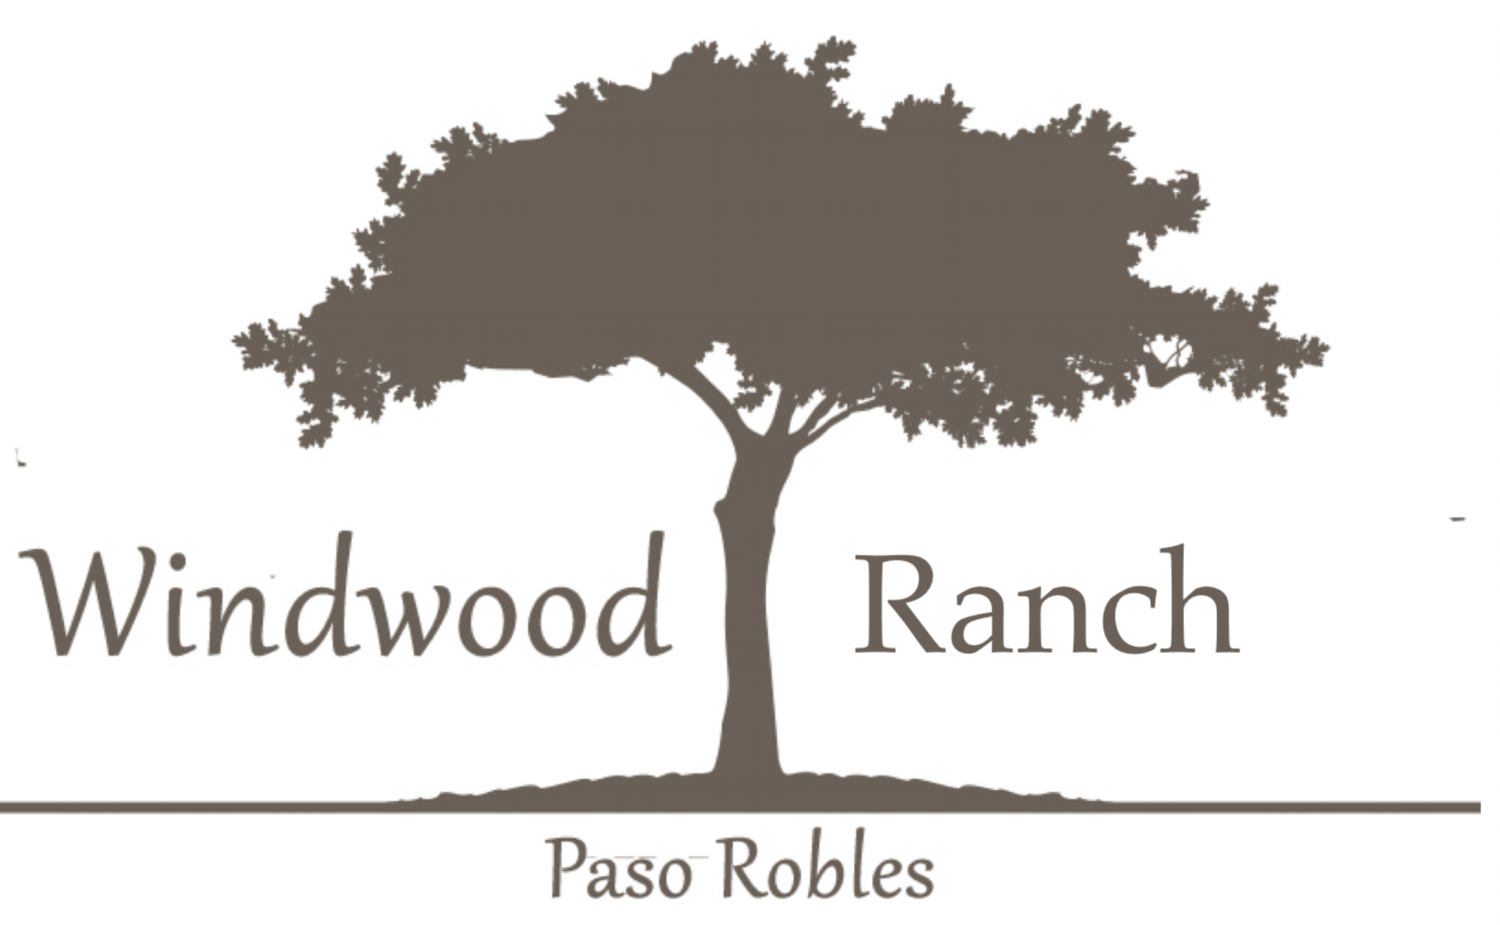 The Windwood Ranch